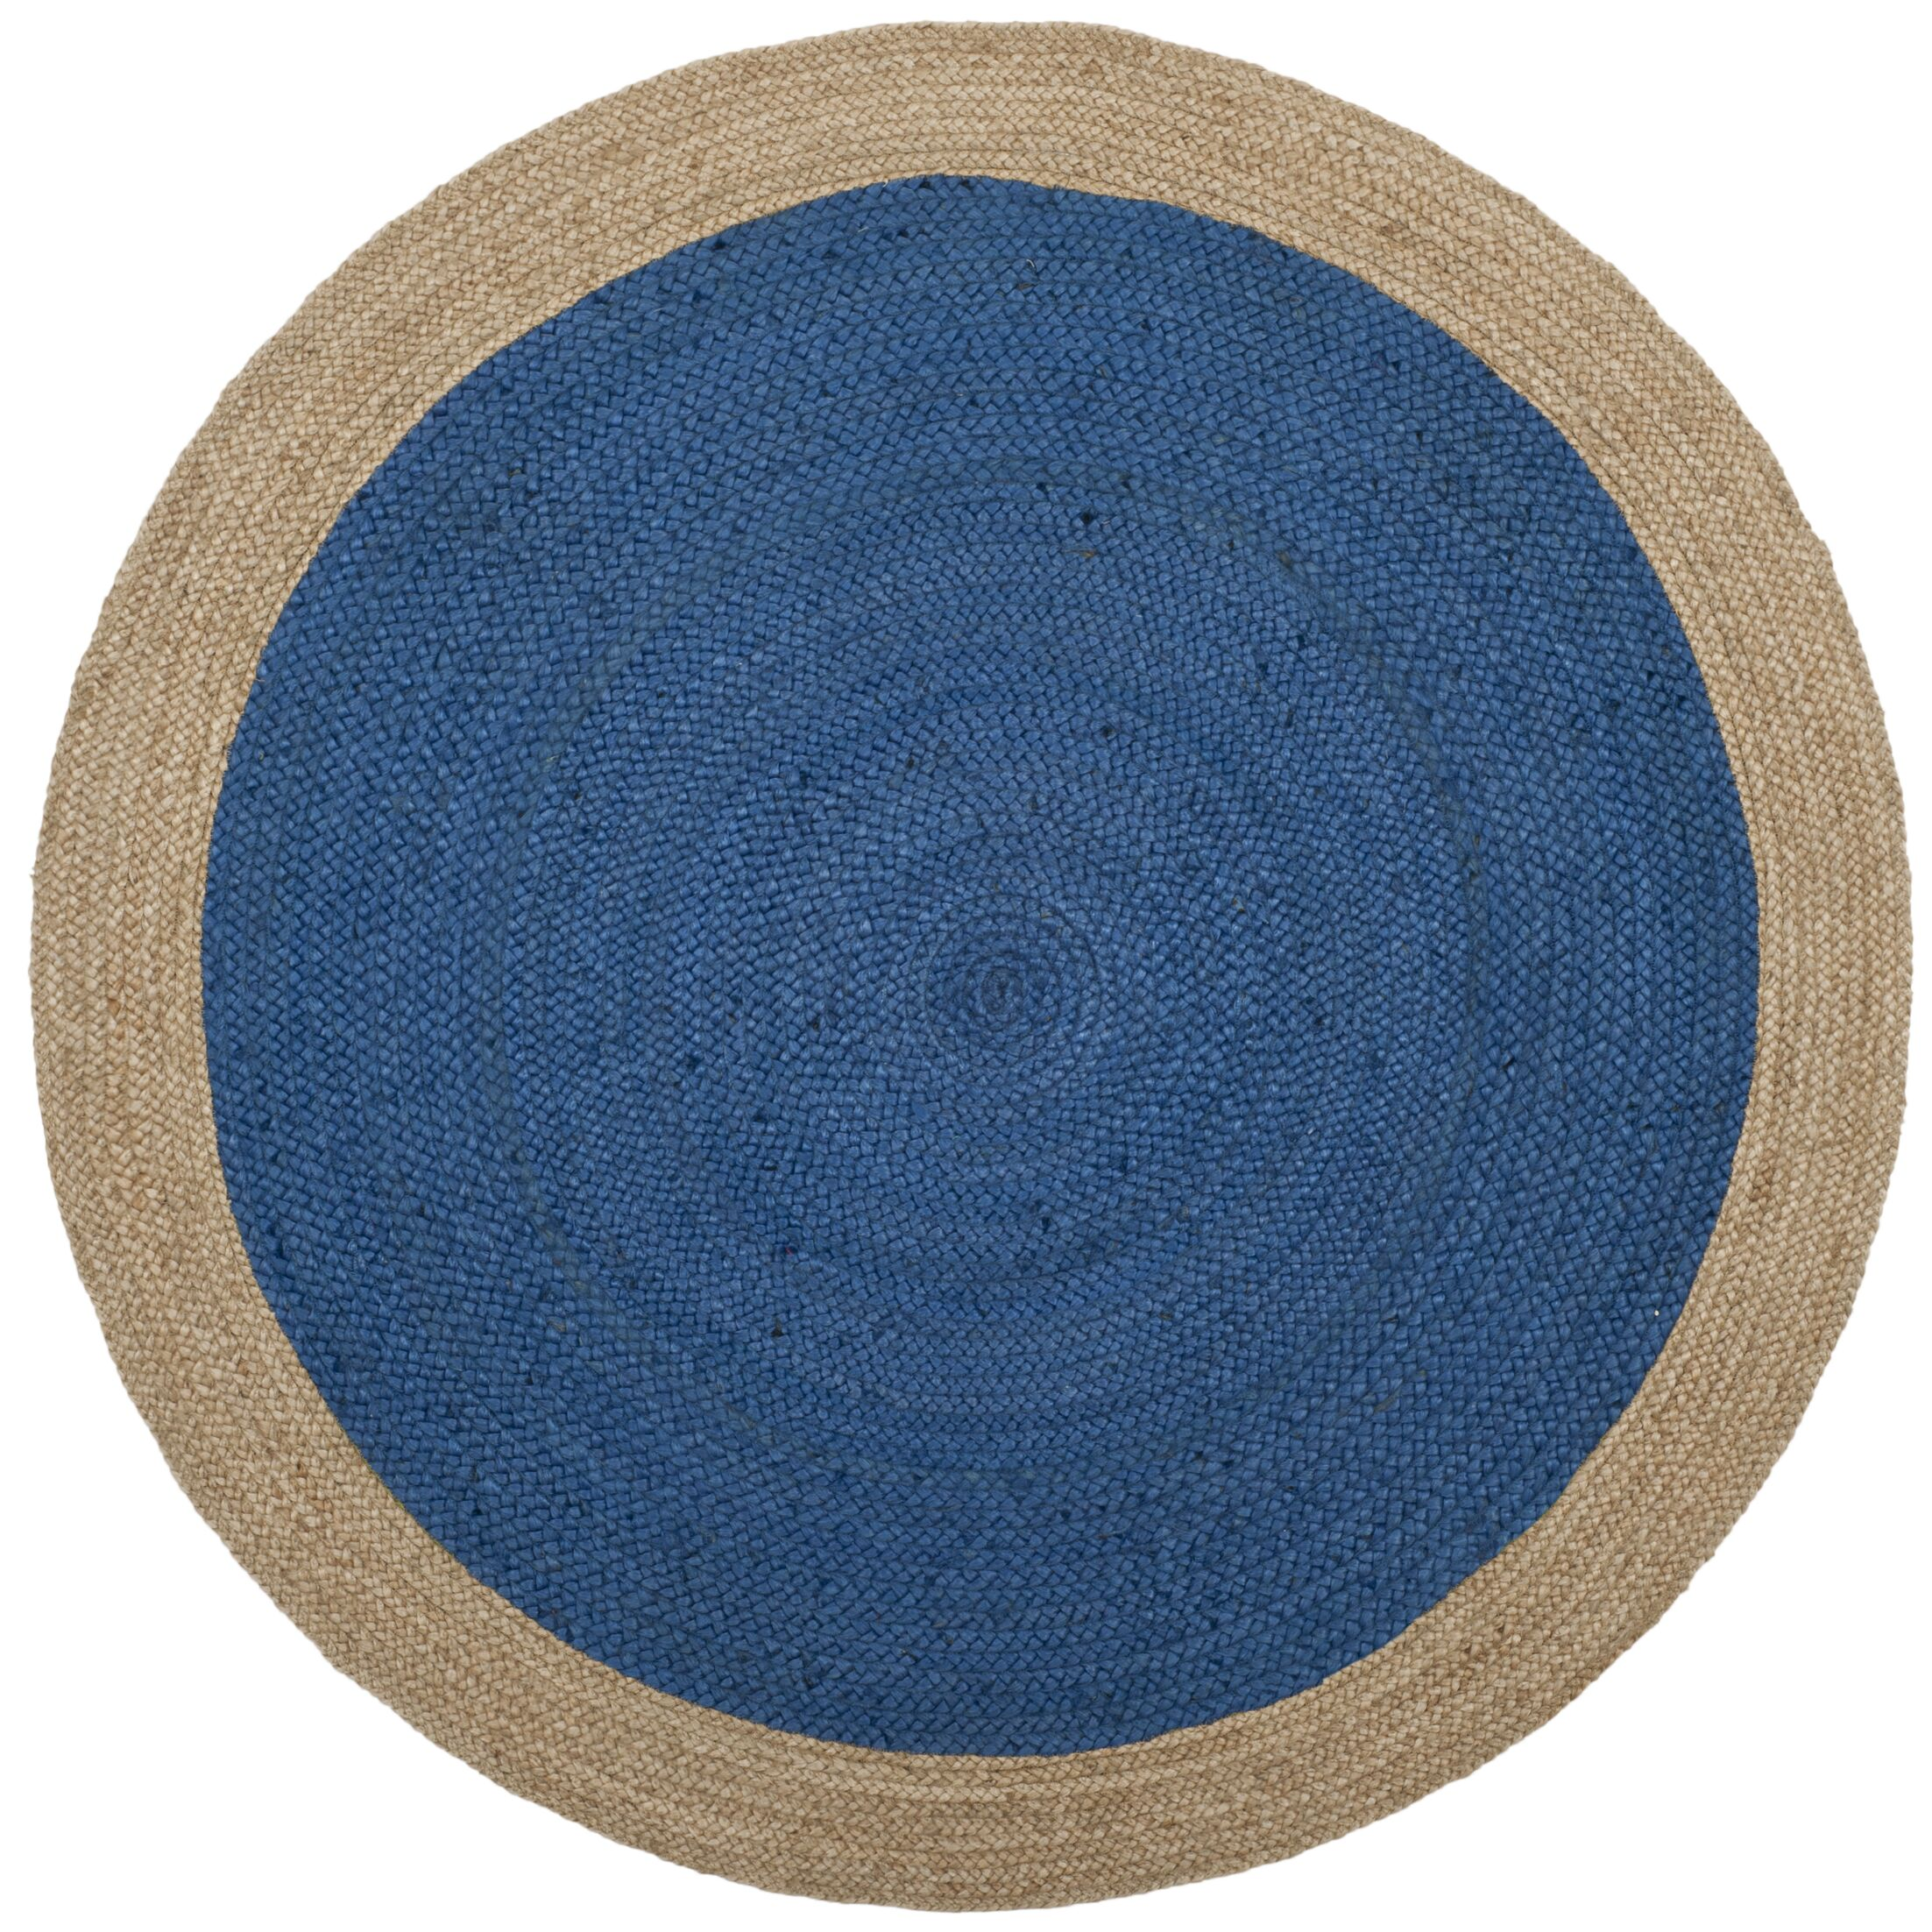 Cayla Fiber Hand-Woven Royal Blue/Natural Area Rug Rug Size: Round 5'